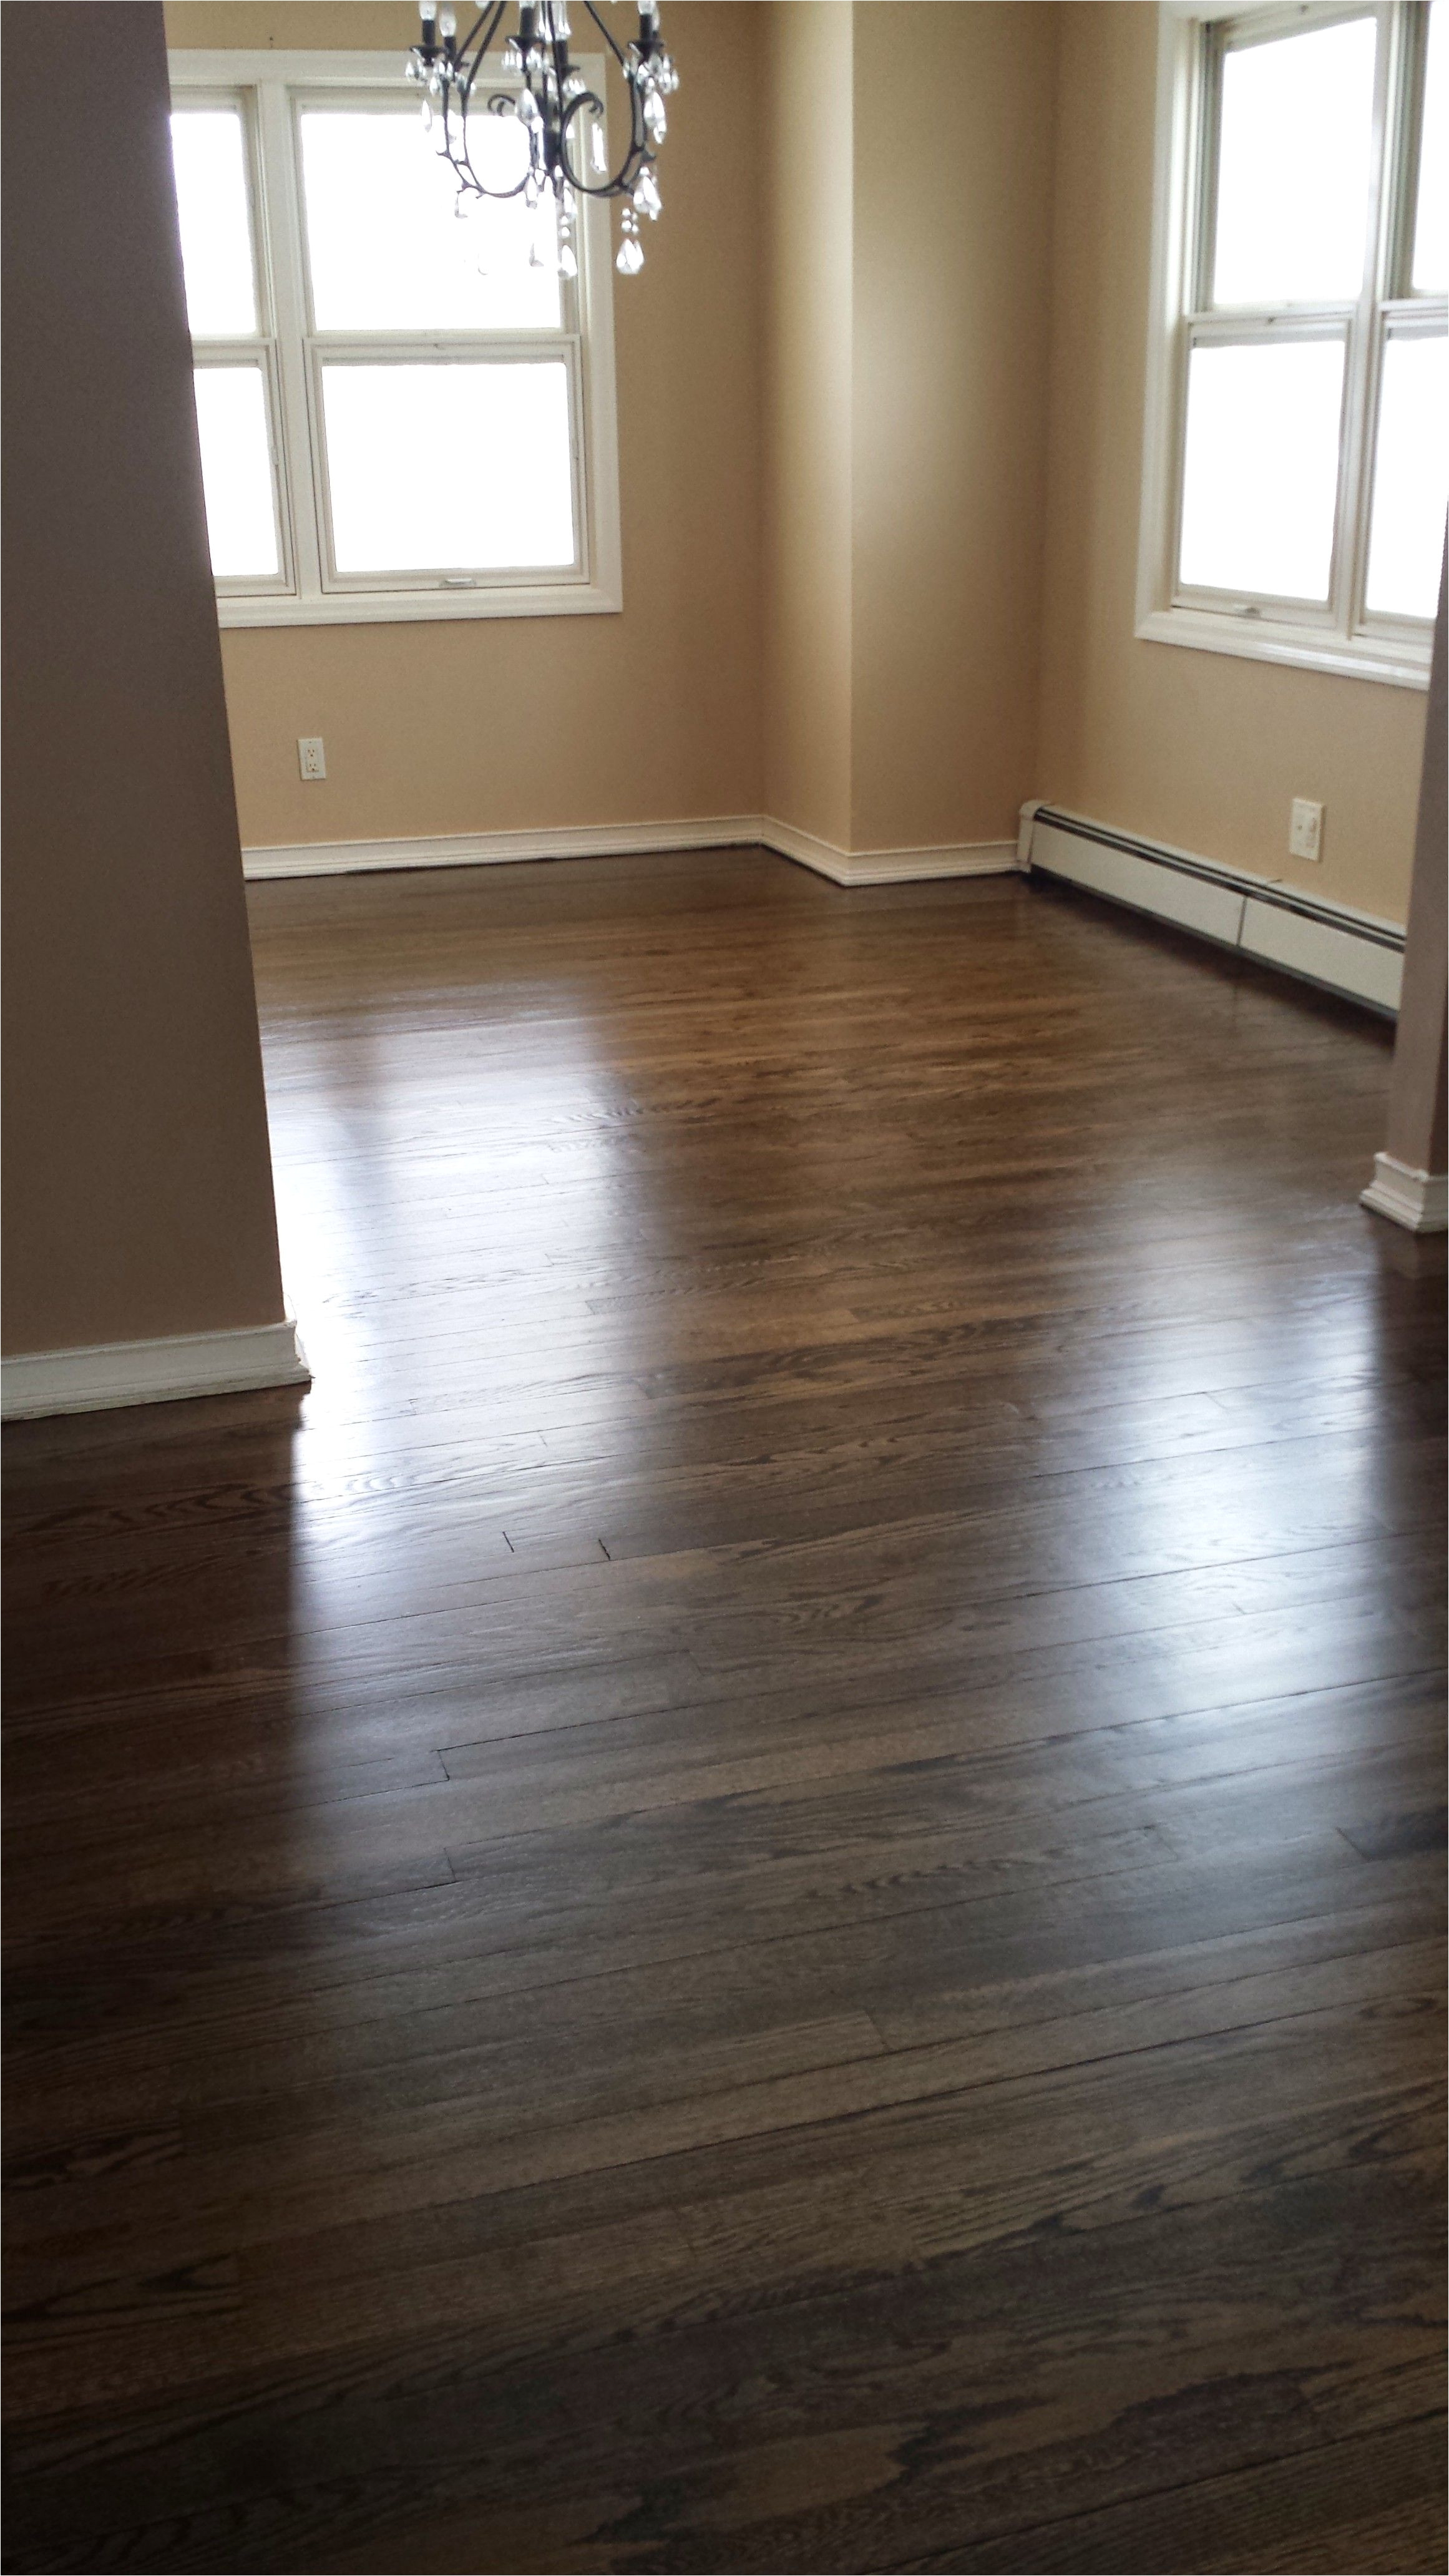 10 Unique How to Restore Hardwood Floors without Refinishing 2021 free download how to restore hardwood floors without refinishing of refinish hardwood floors diy renew hardwood floors without sanding in refinish hardwood floors diy renew hardwood floors without sanding